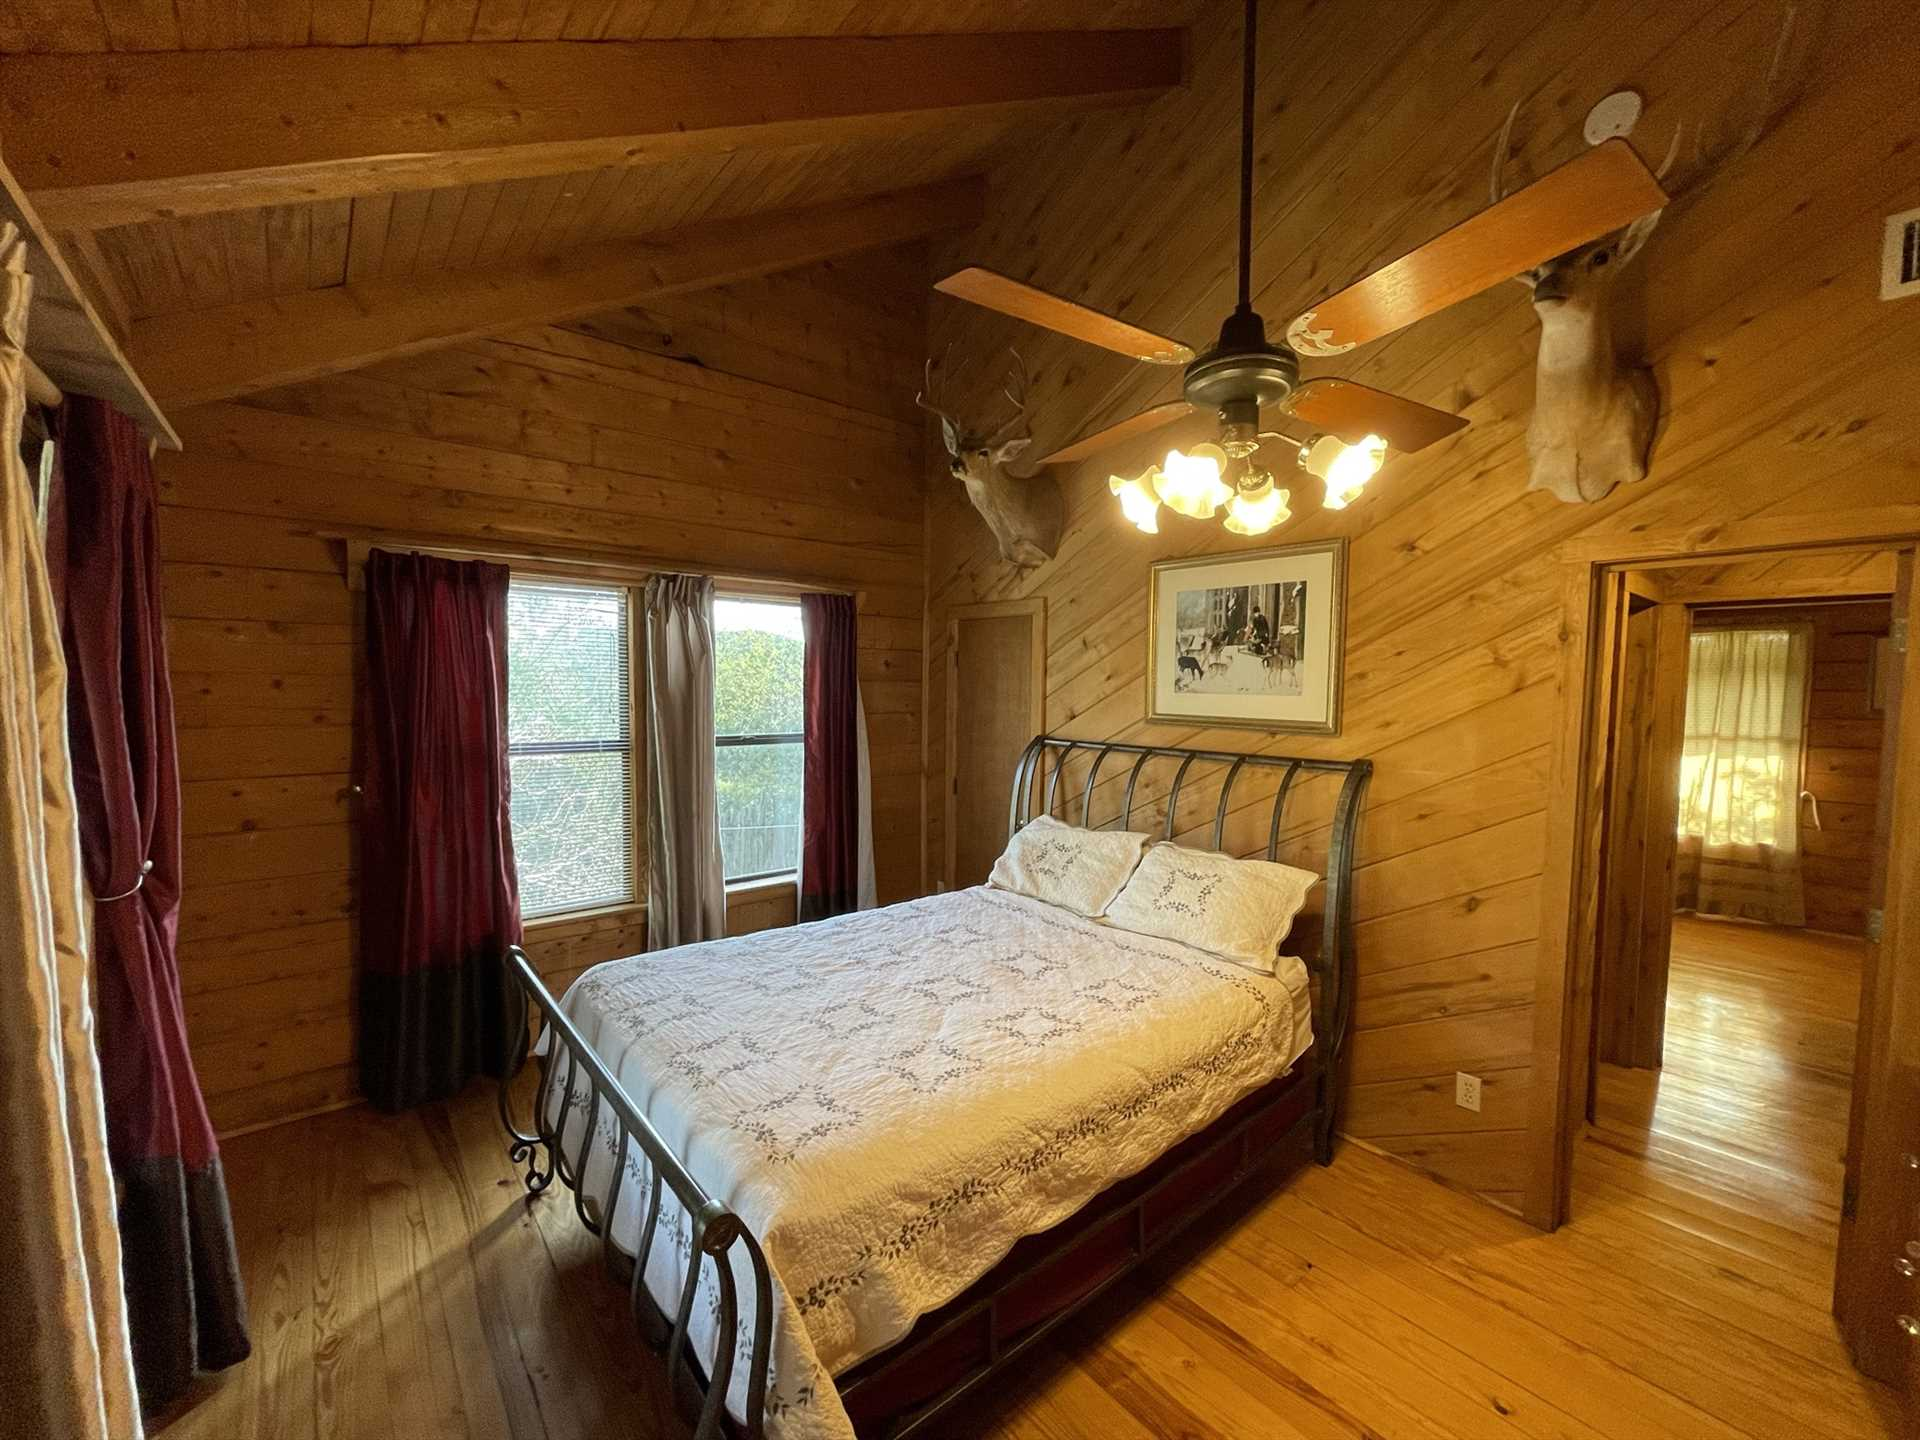 This plush double bed graces the third of three bedrooms in the Lodge. All told, there are pampering sleep accommodations for up to six of your folks.